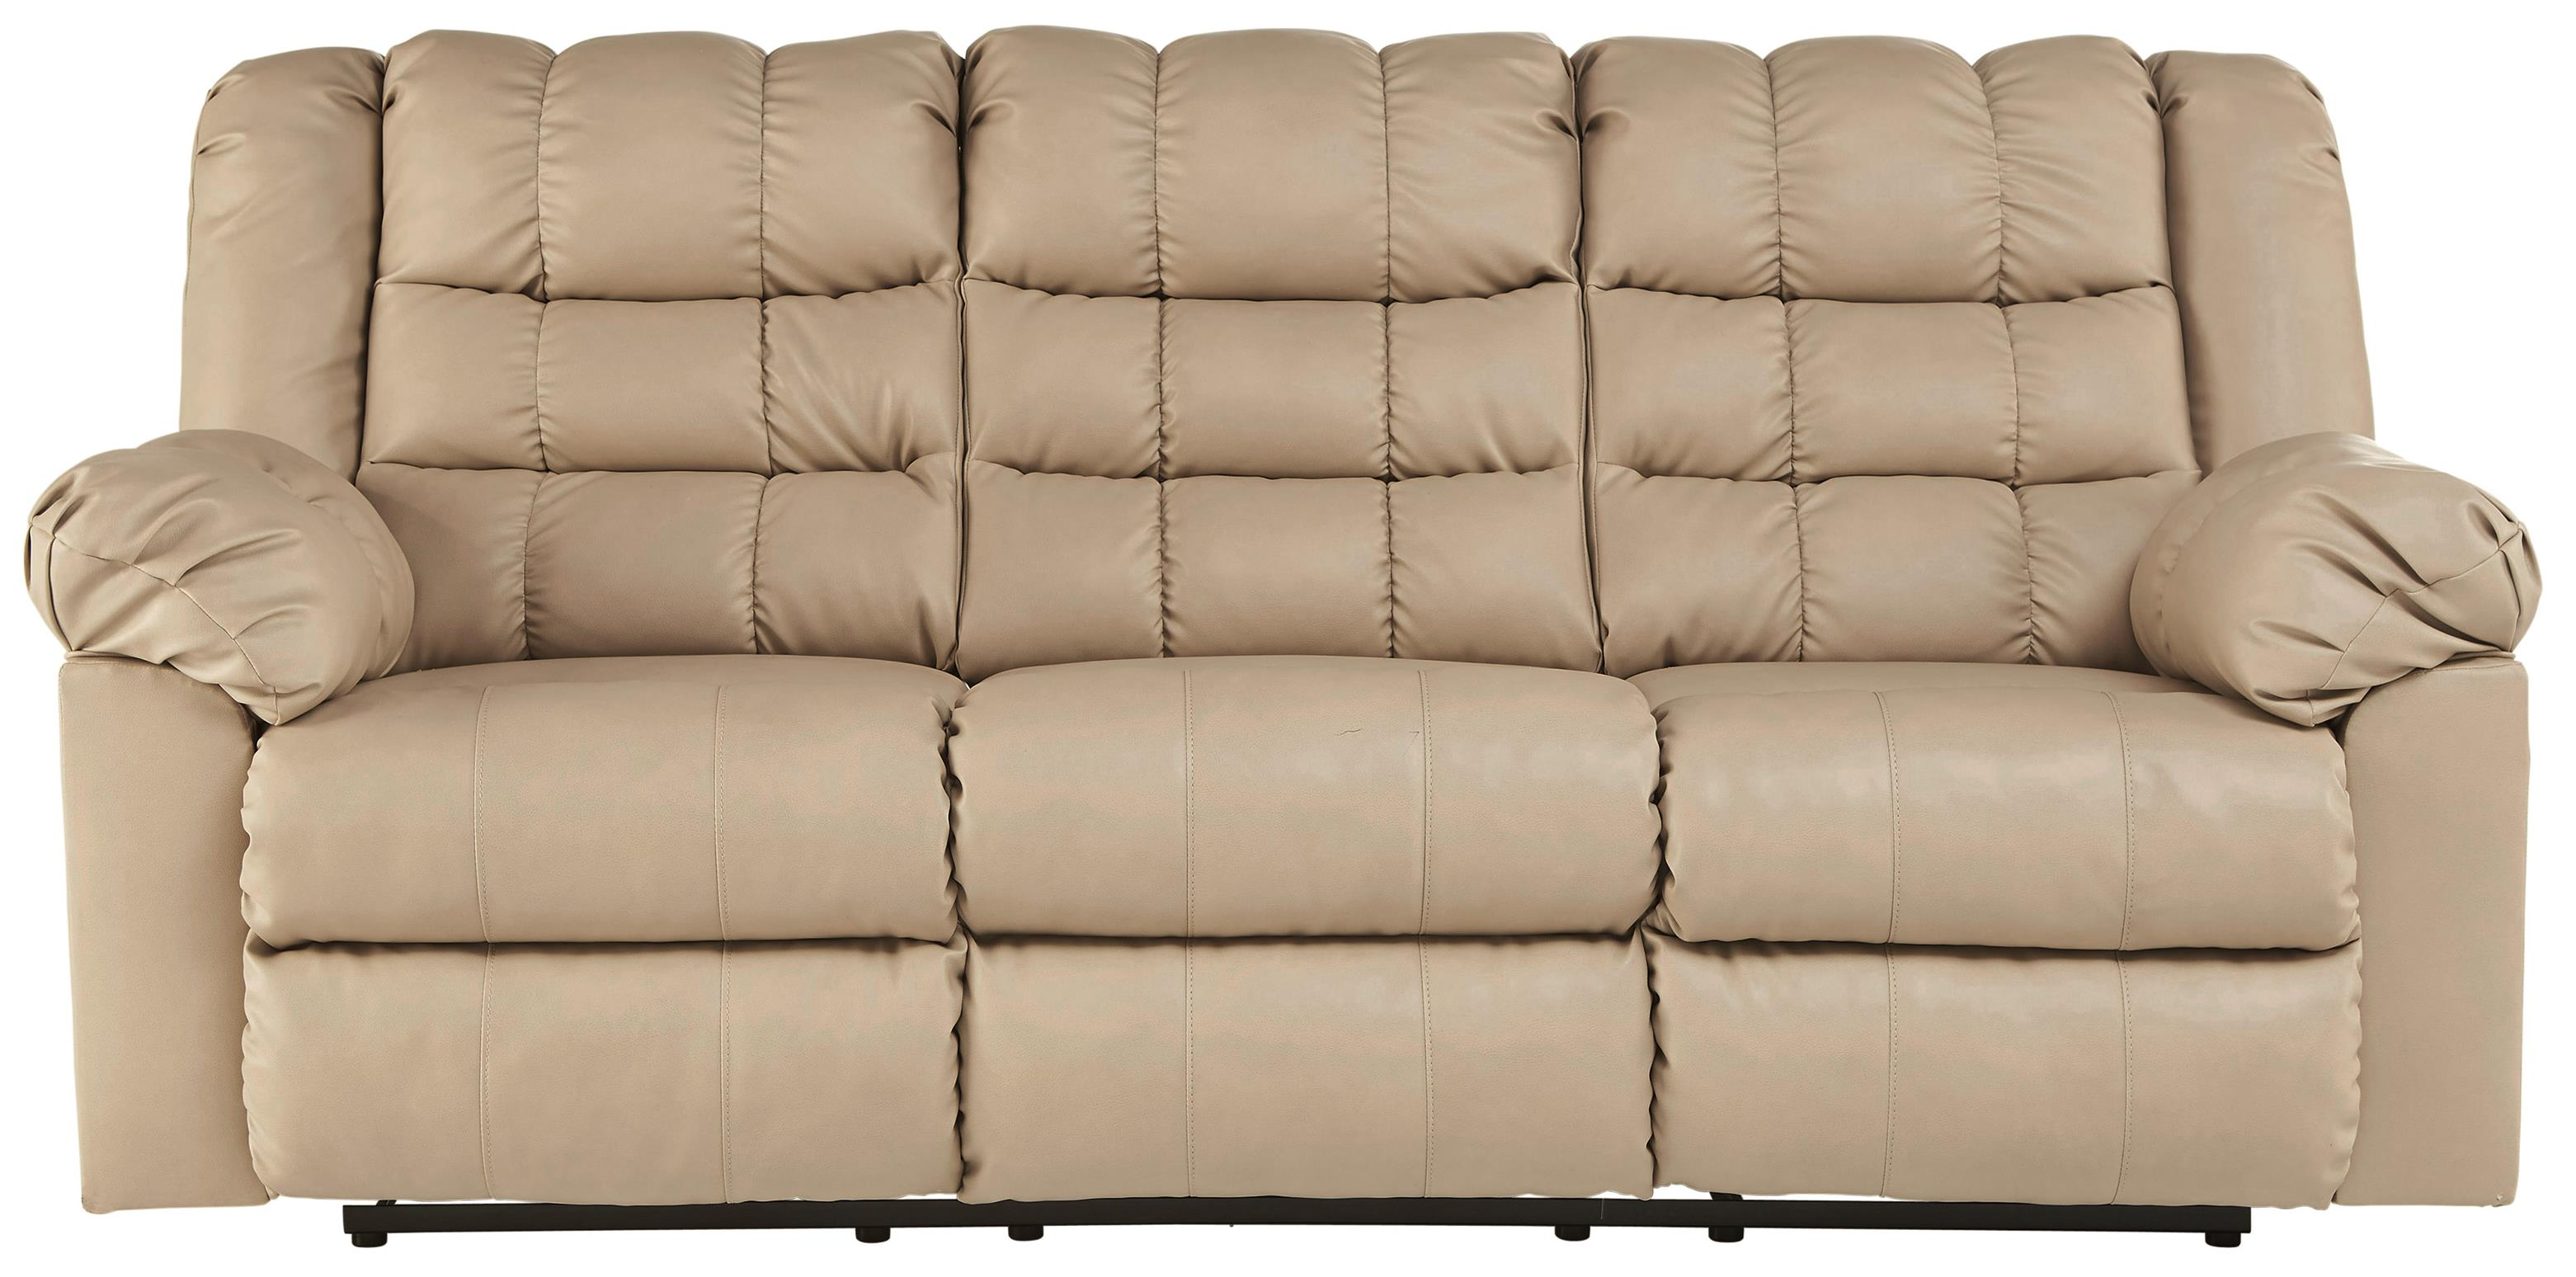 Signature Design by Ashley Brolayne DuraBlend® Reclining Sofa - Item Number: 8320188